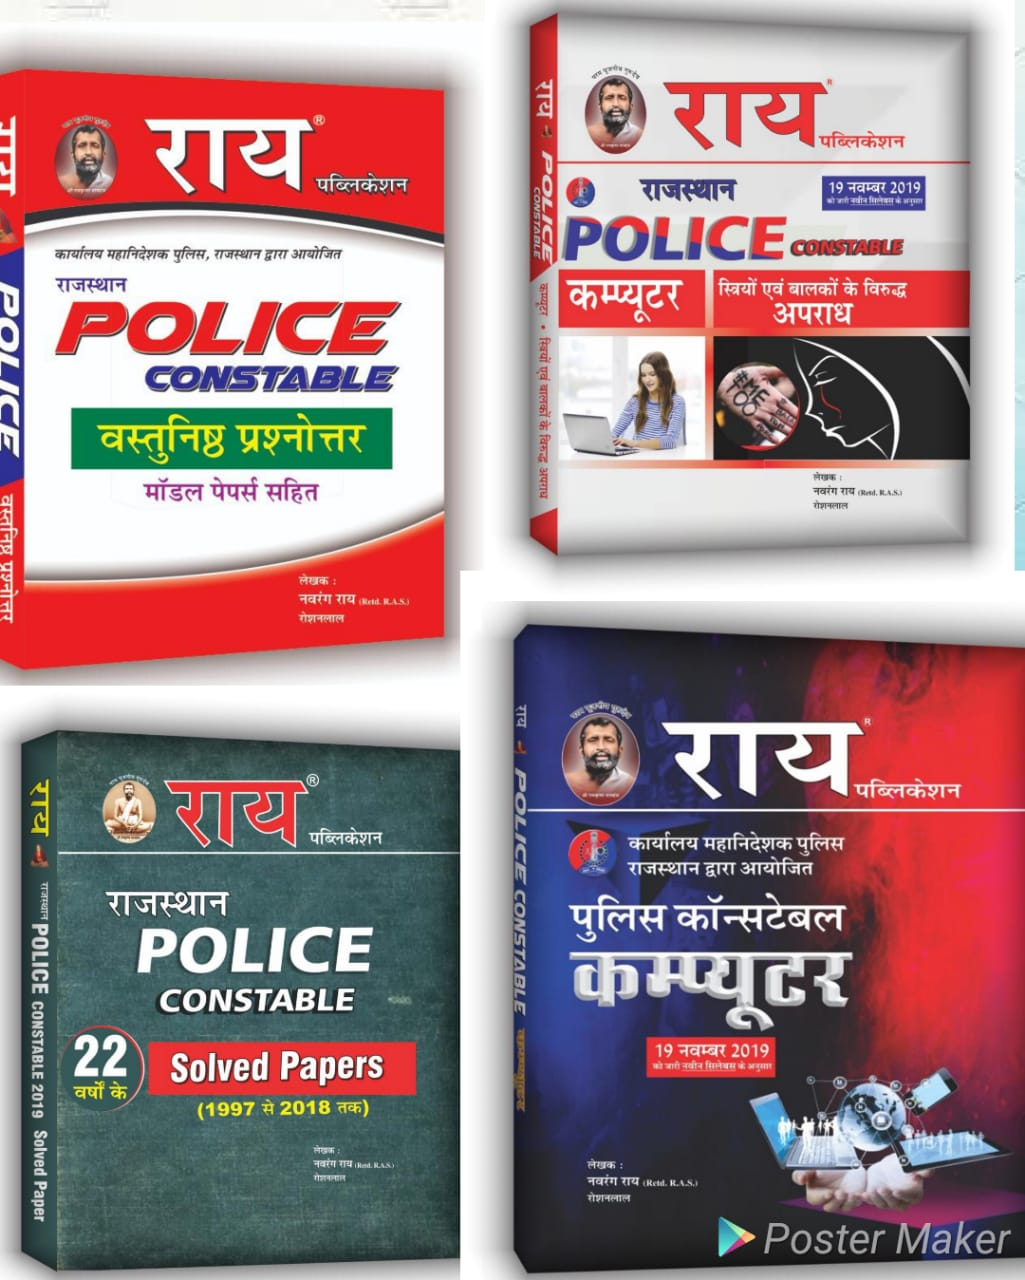 Rajasthan Police Constable Set of 4 Books ( Objectives , Solved Papers , Mahila avem Baal Aapradh & Computer ) (Rajasthan Police Constable Sets )